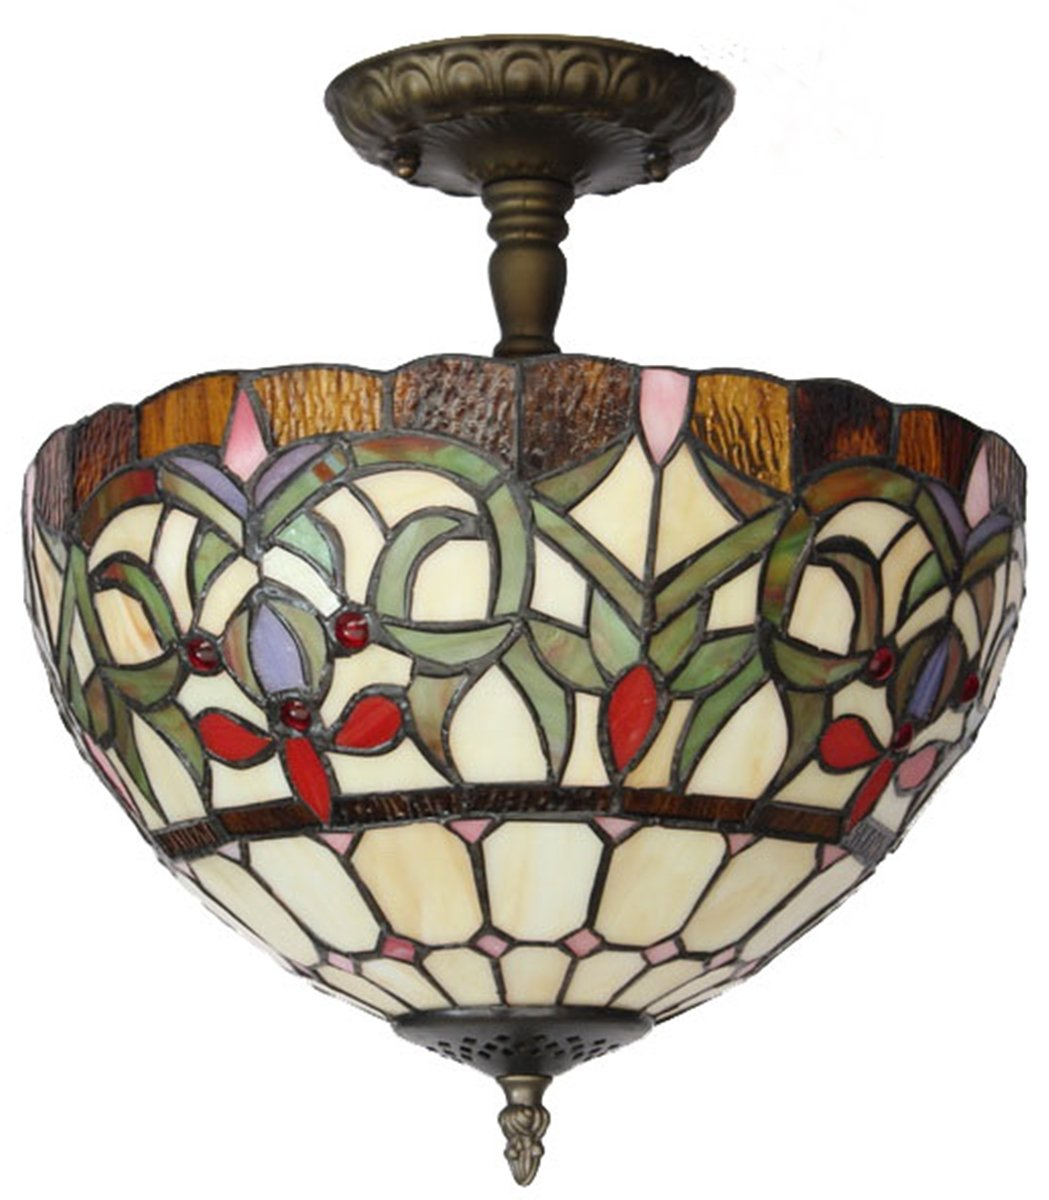 71XqfGFu93L._SL1200_ amora lighting am1081hl12 tiffany style stained glass ceiling Wiring a Ceiling Fan with Light at aneh.co